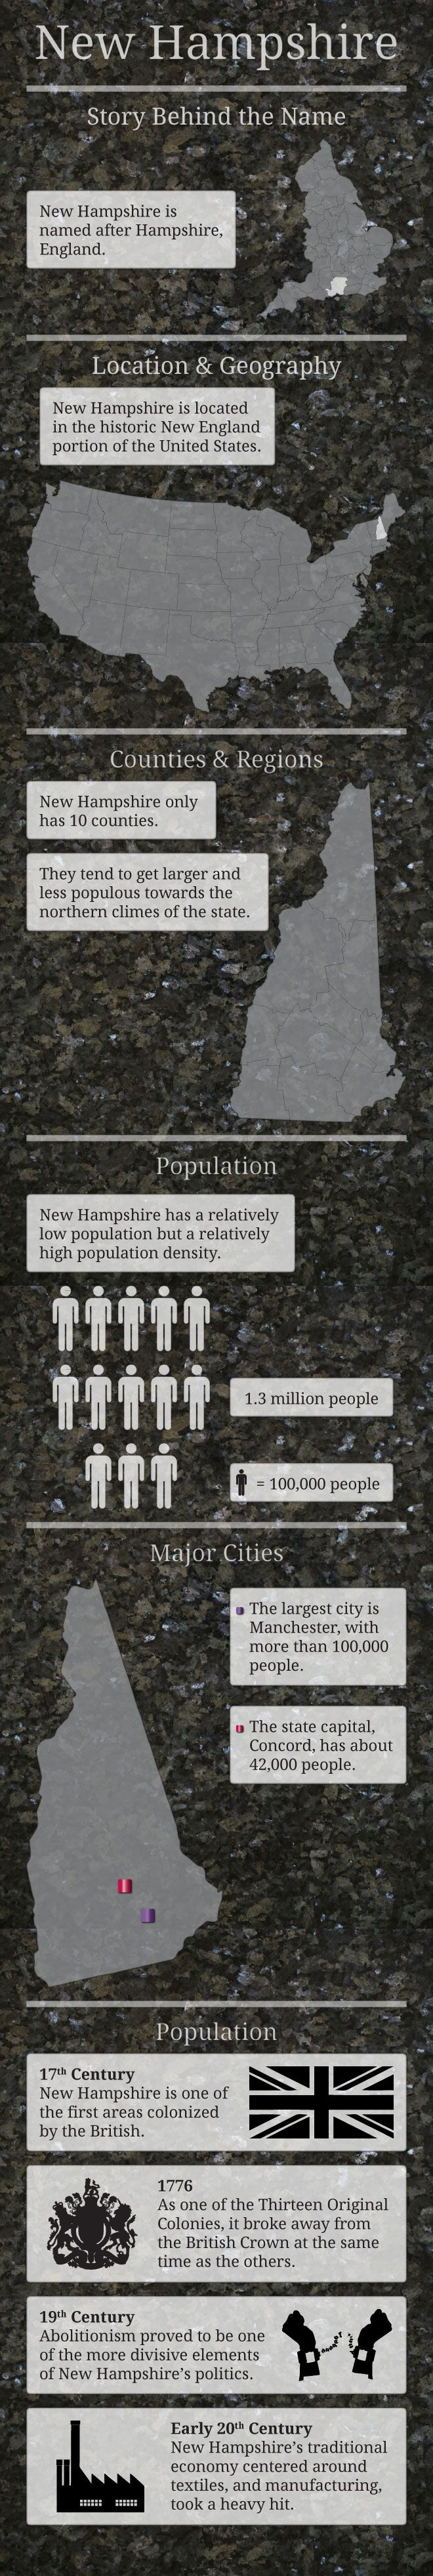 Infographic of New Hampshire Fast Facts   #NewHampshire  Re-pinned by www.avacationrental4me.com